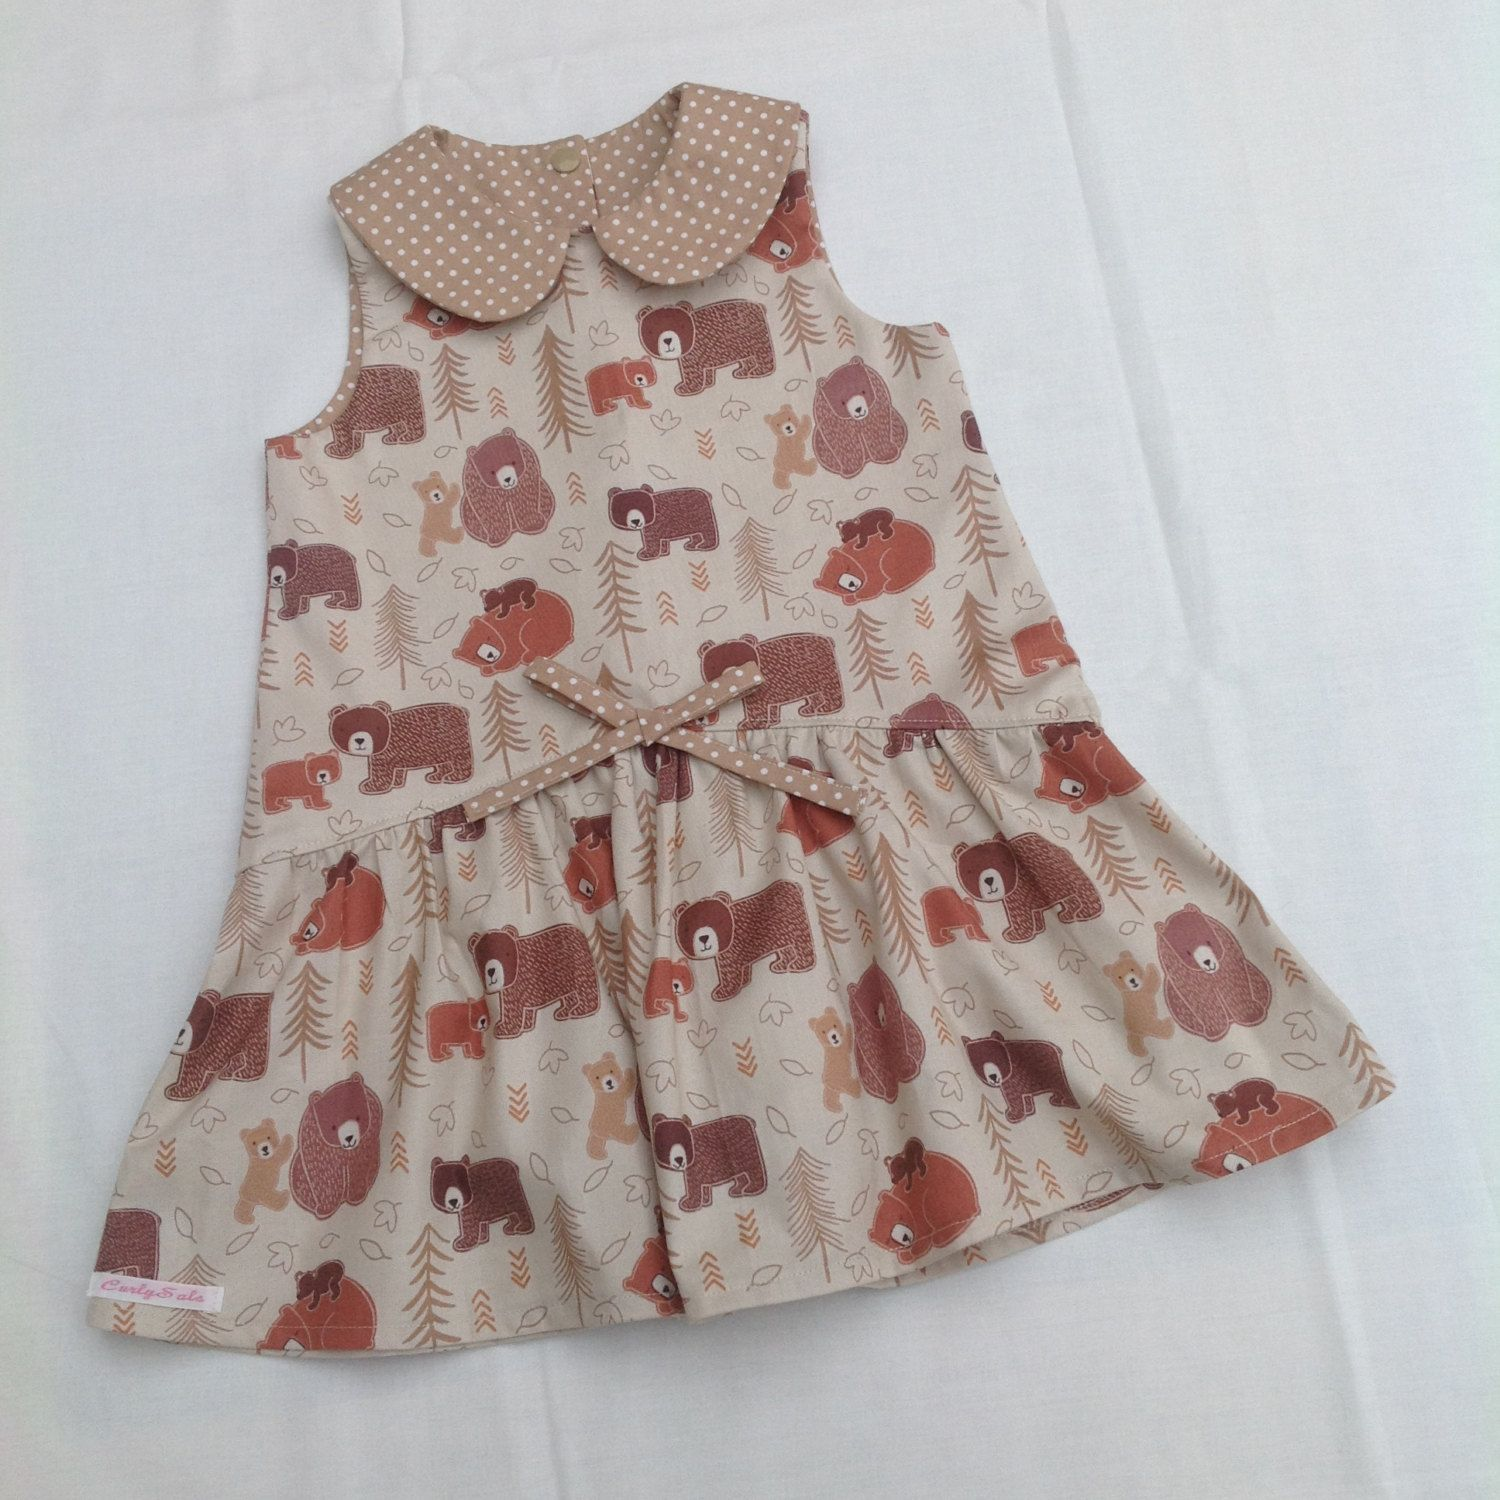 Baby girls toddlers dropped waist dress with Peter Pan collar age